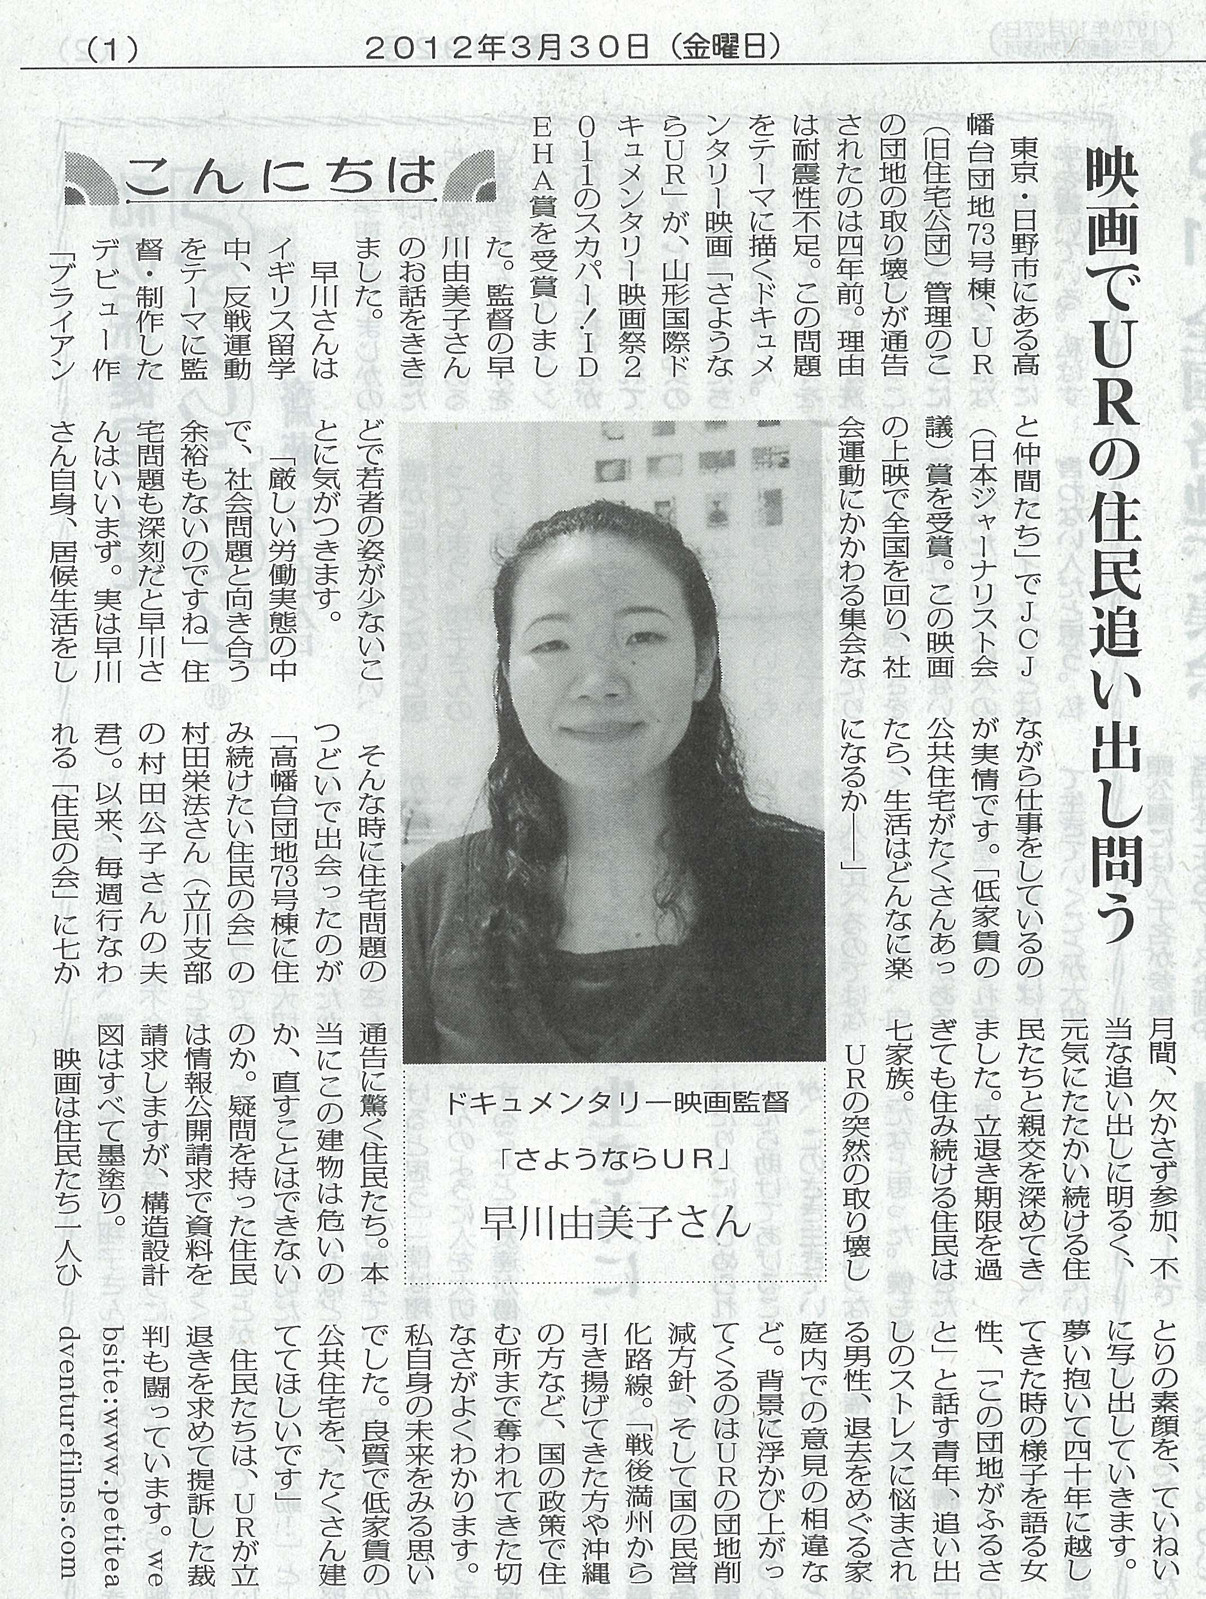 Fuminshinbun_20120330_re_small